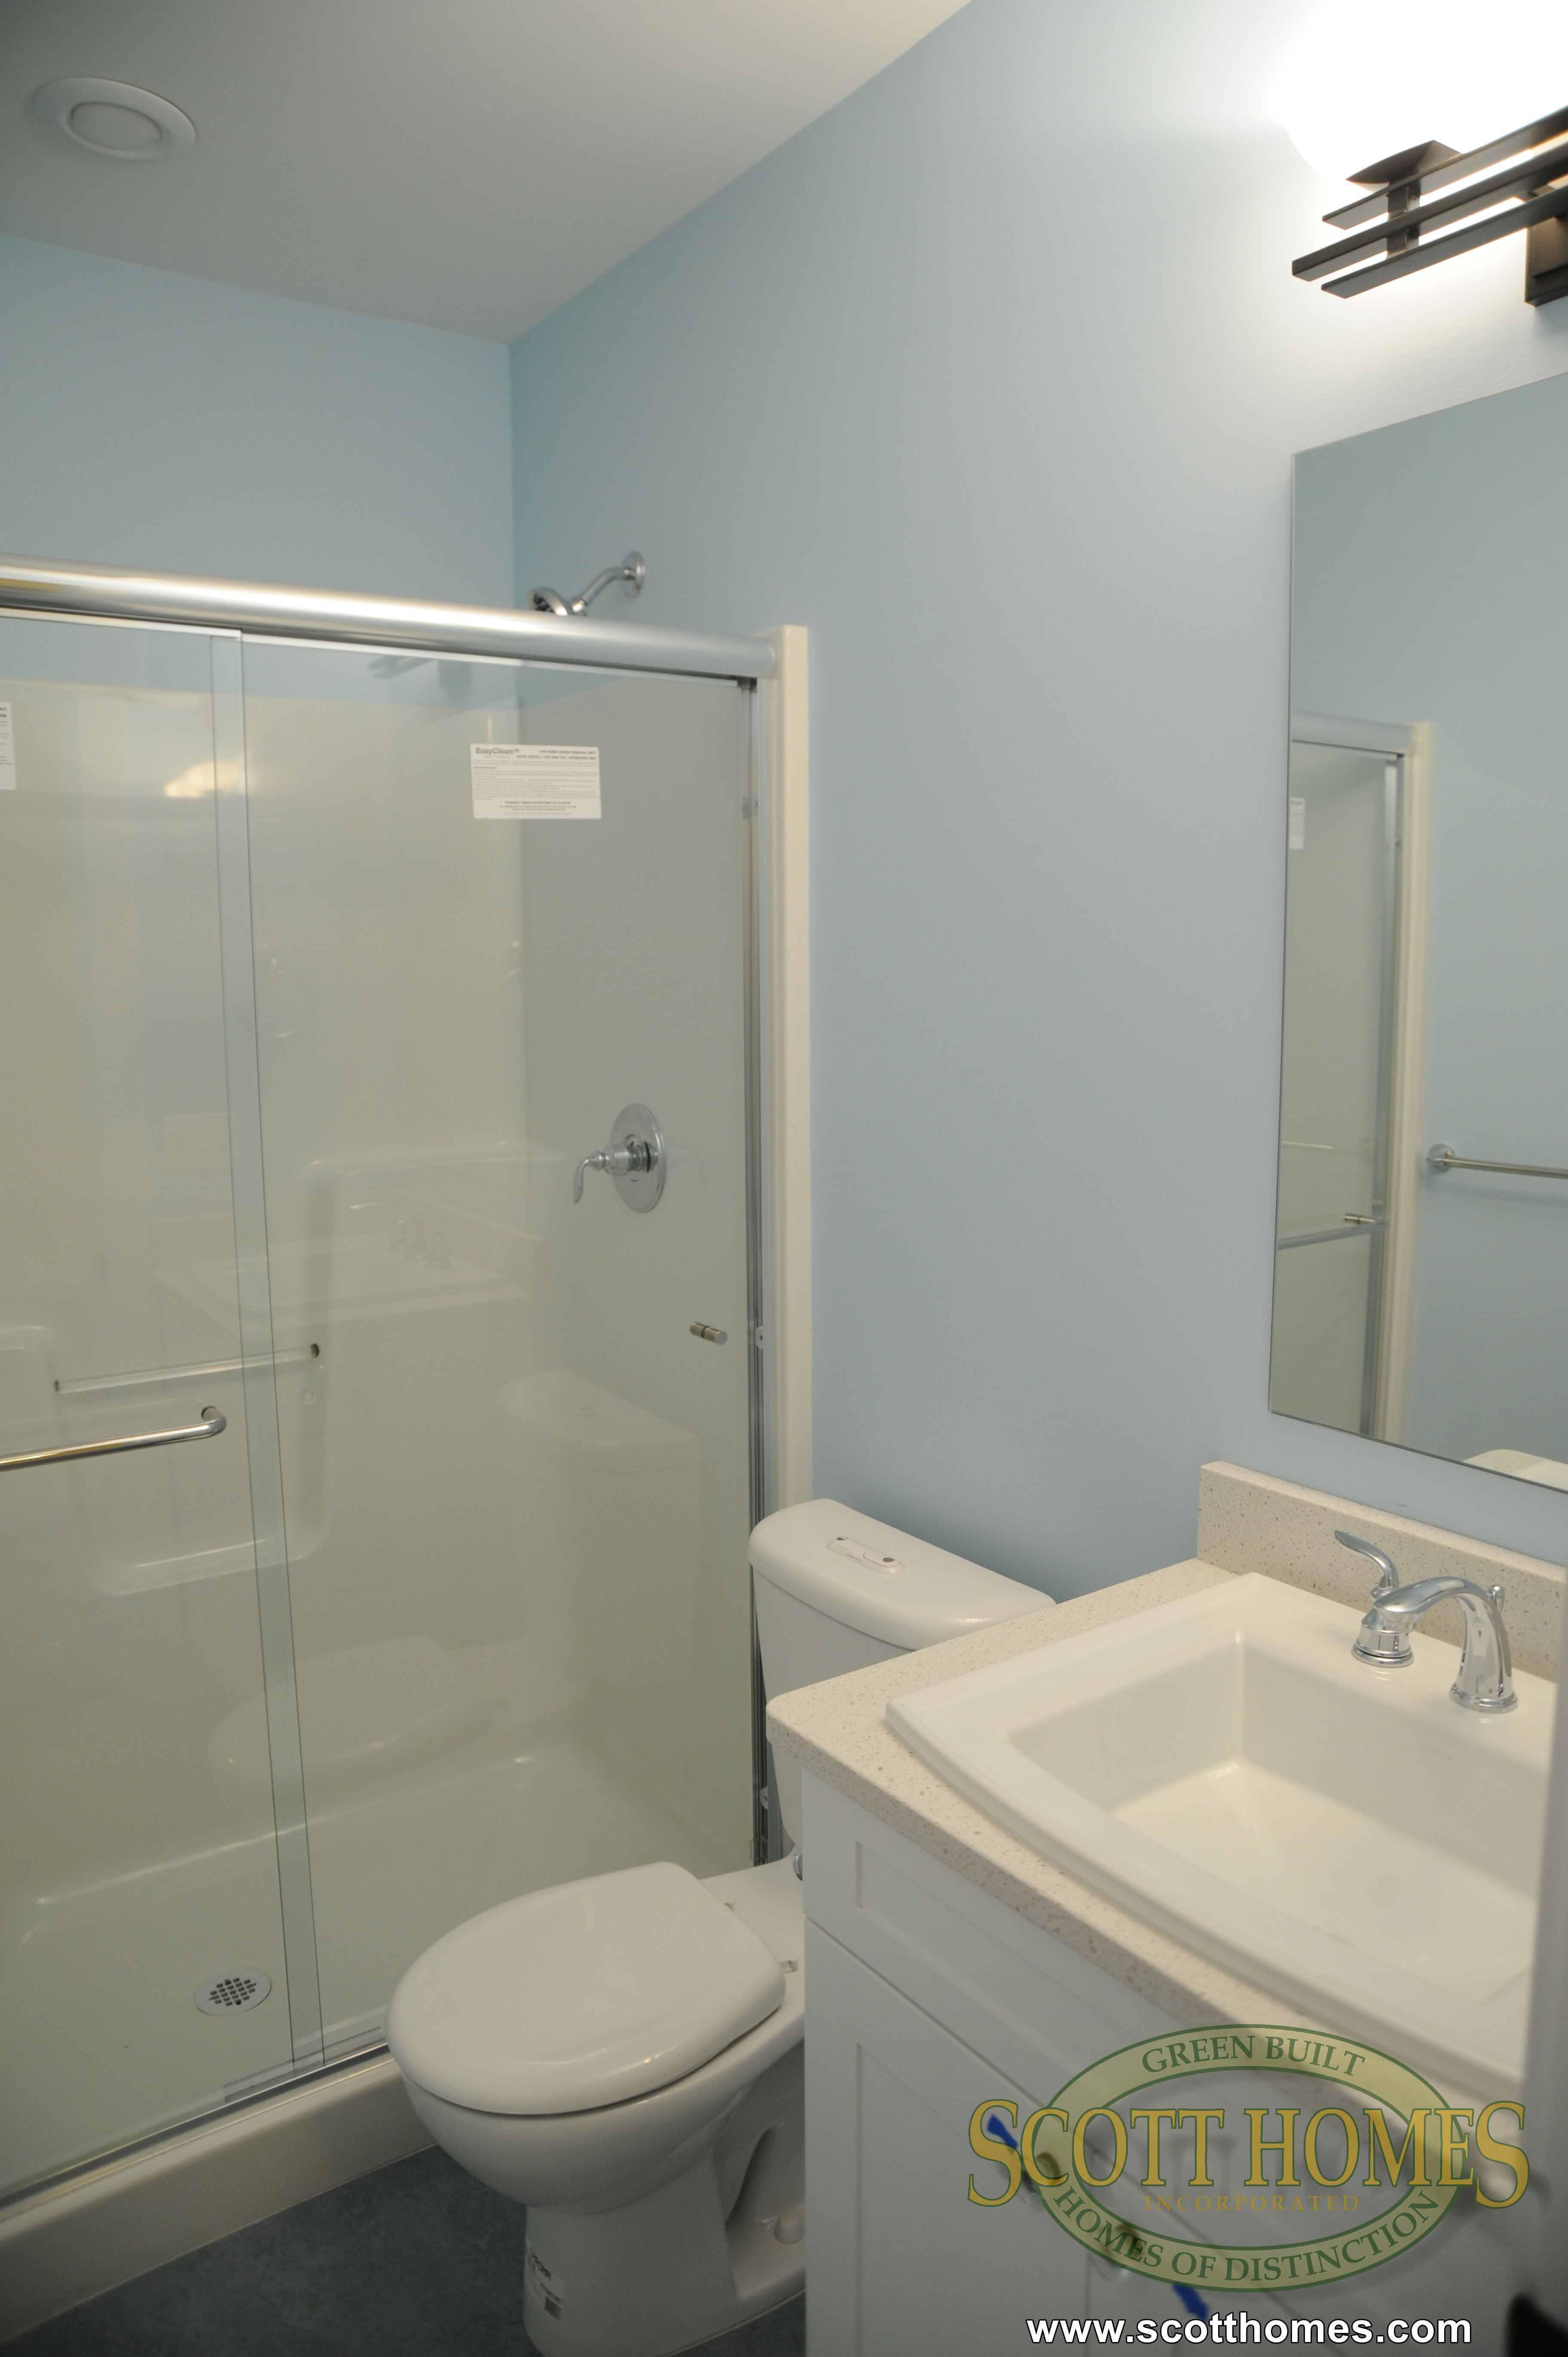 This bathroom has a walk-in shower and one large sink, perfect for guest.